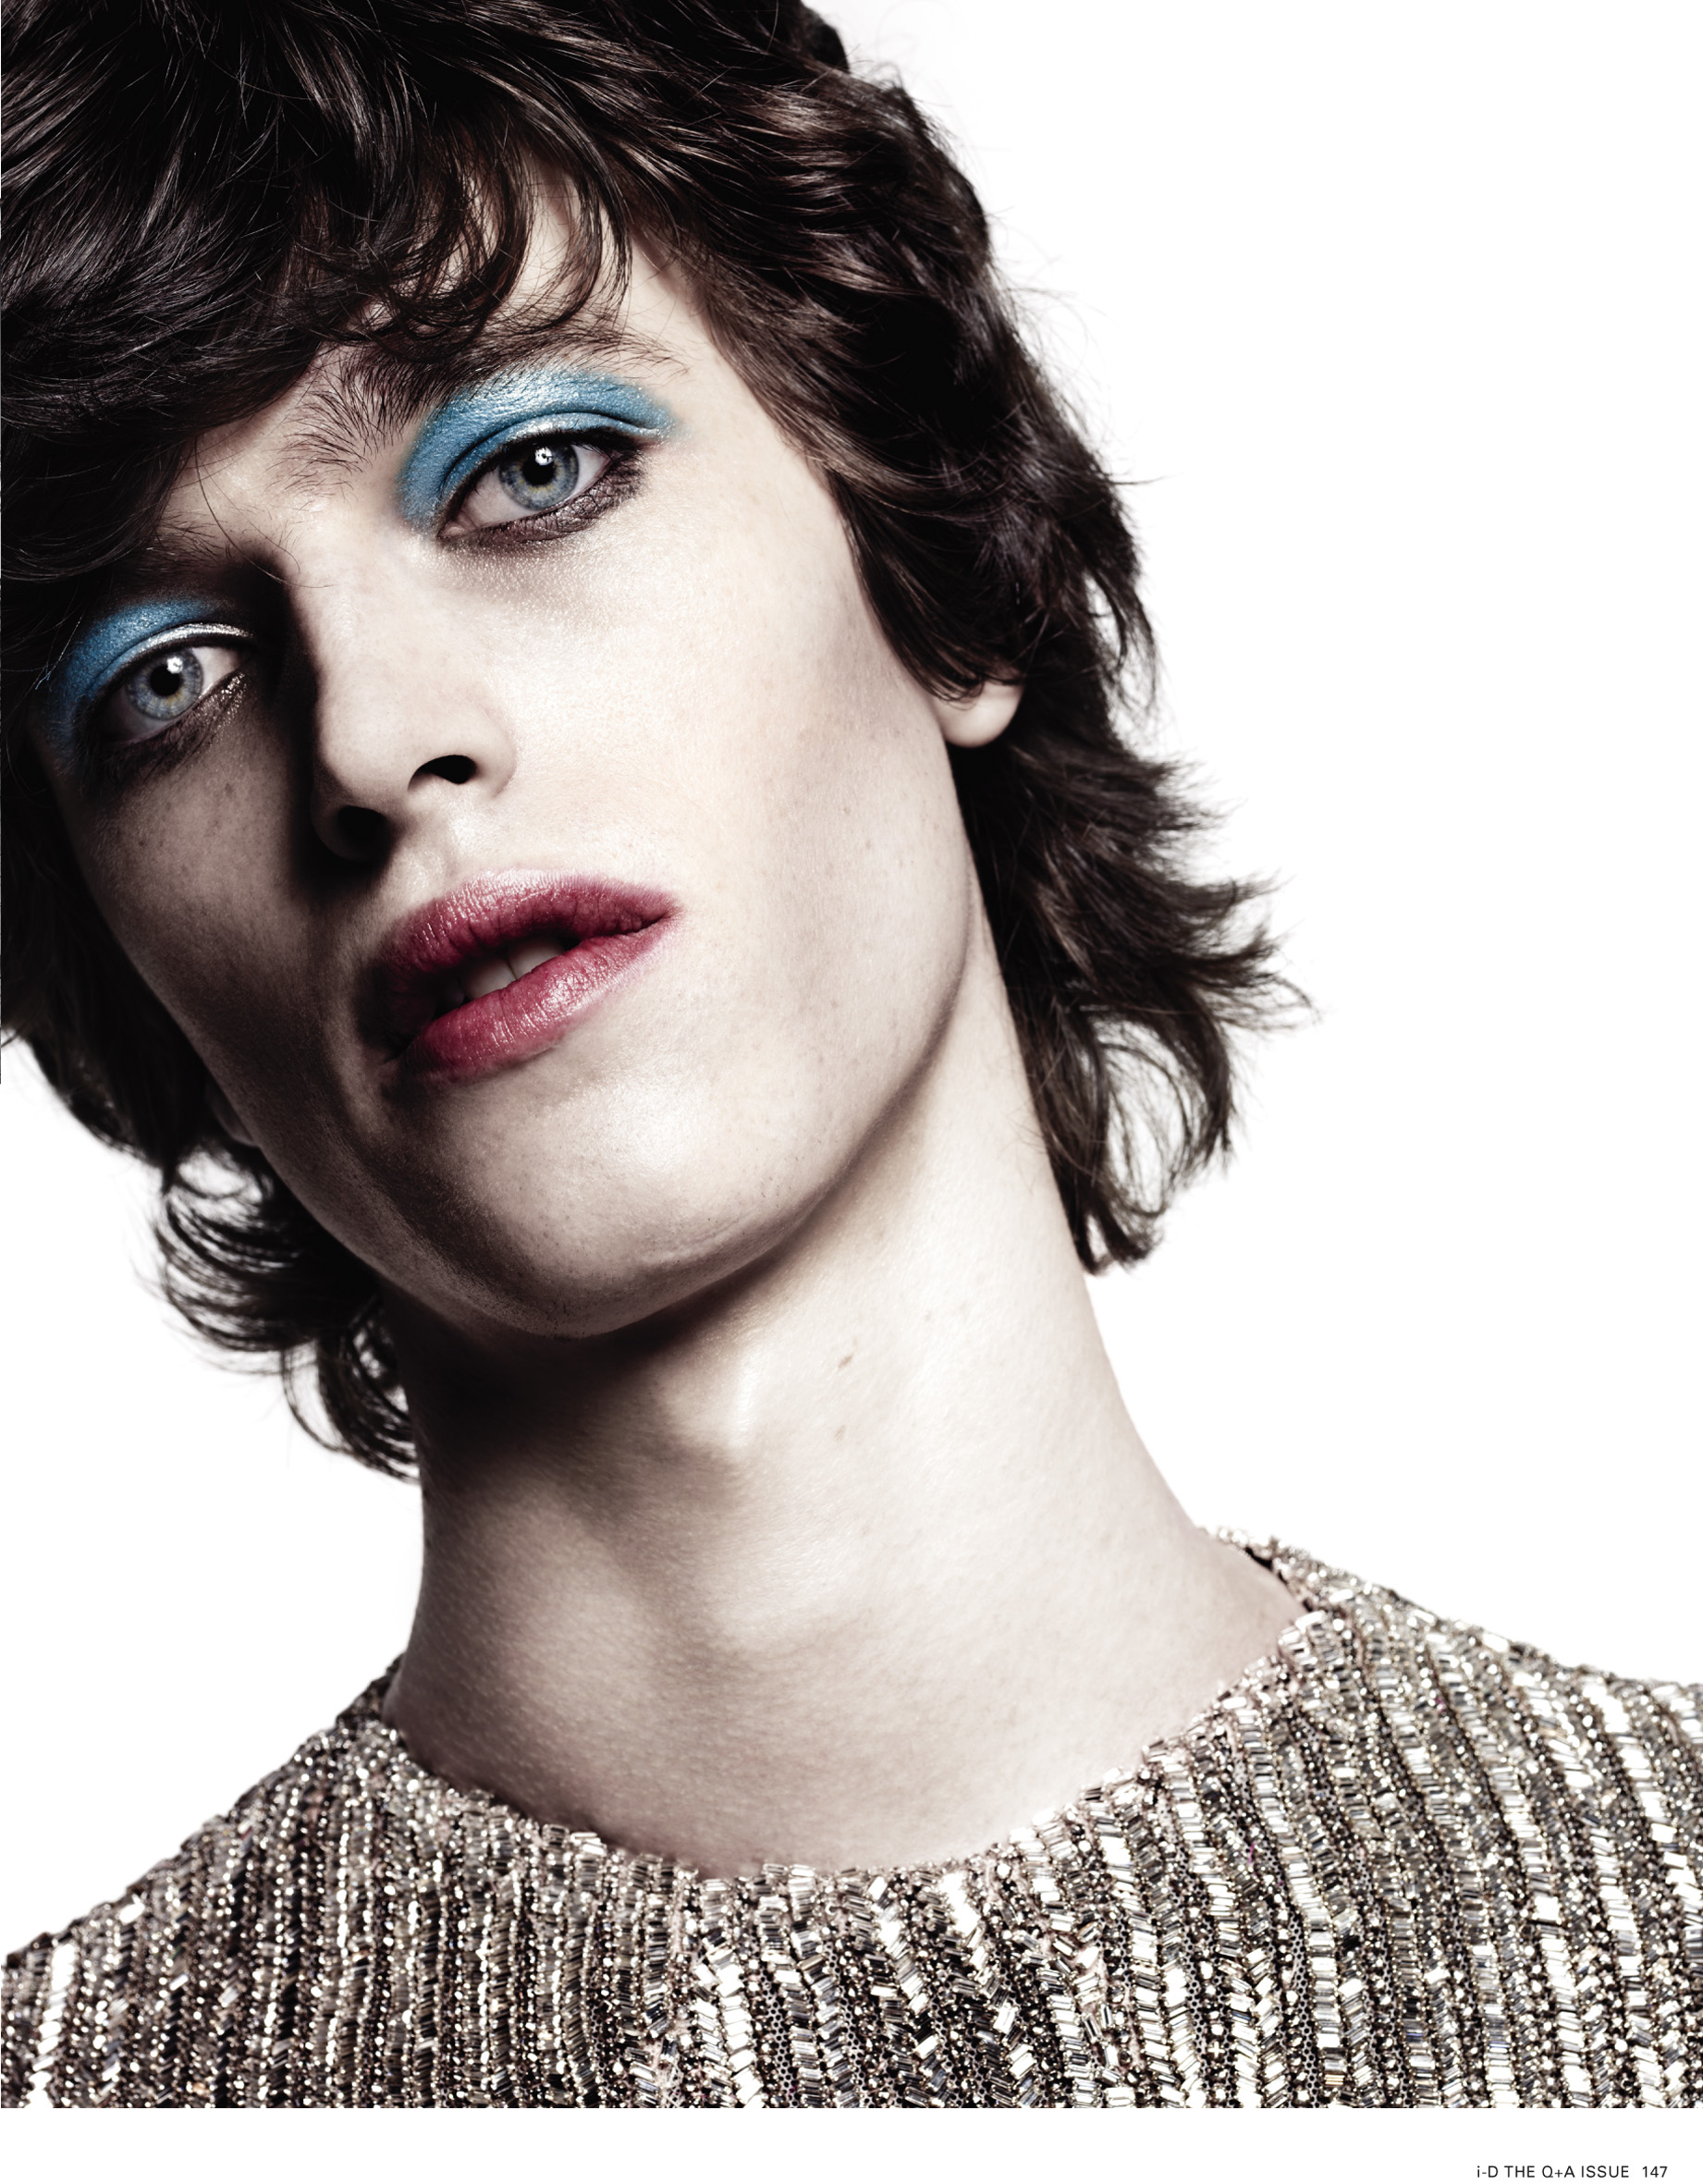 Hedi Slimane Shoots a Glam Reuben Ramacher for i-D